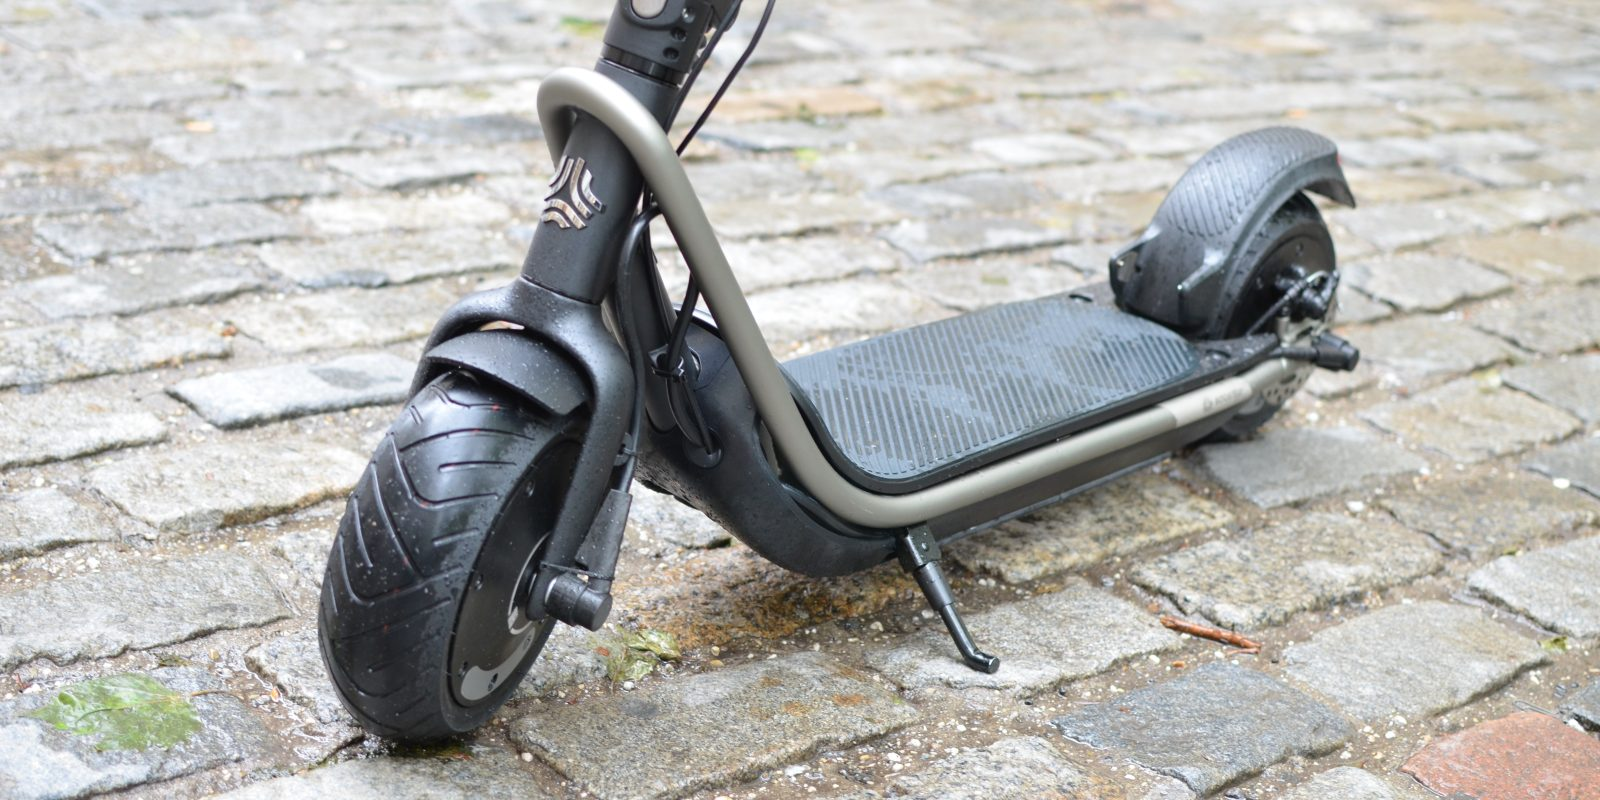 1 5 kW Boosted Rev electric scooter unveiled today: specs